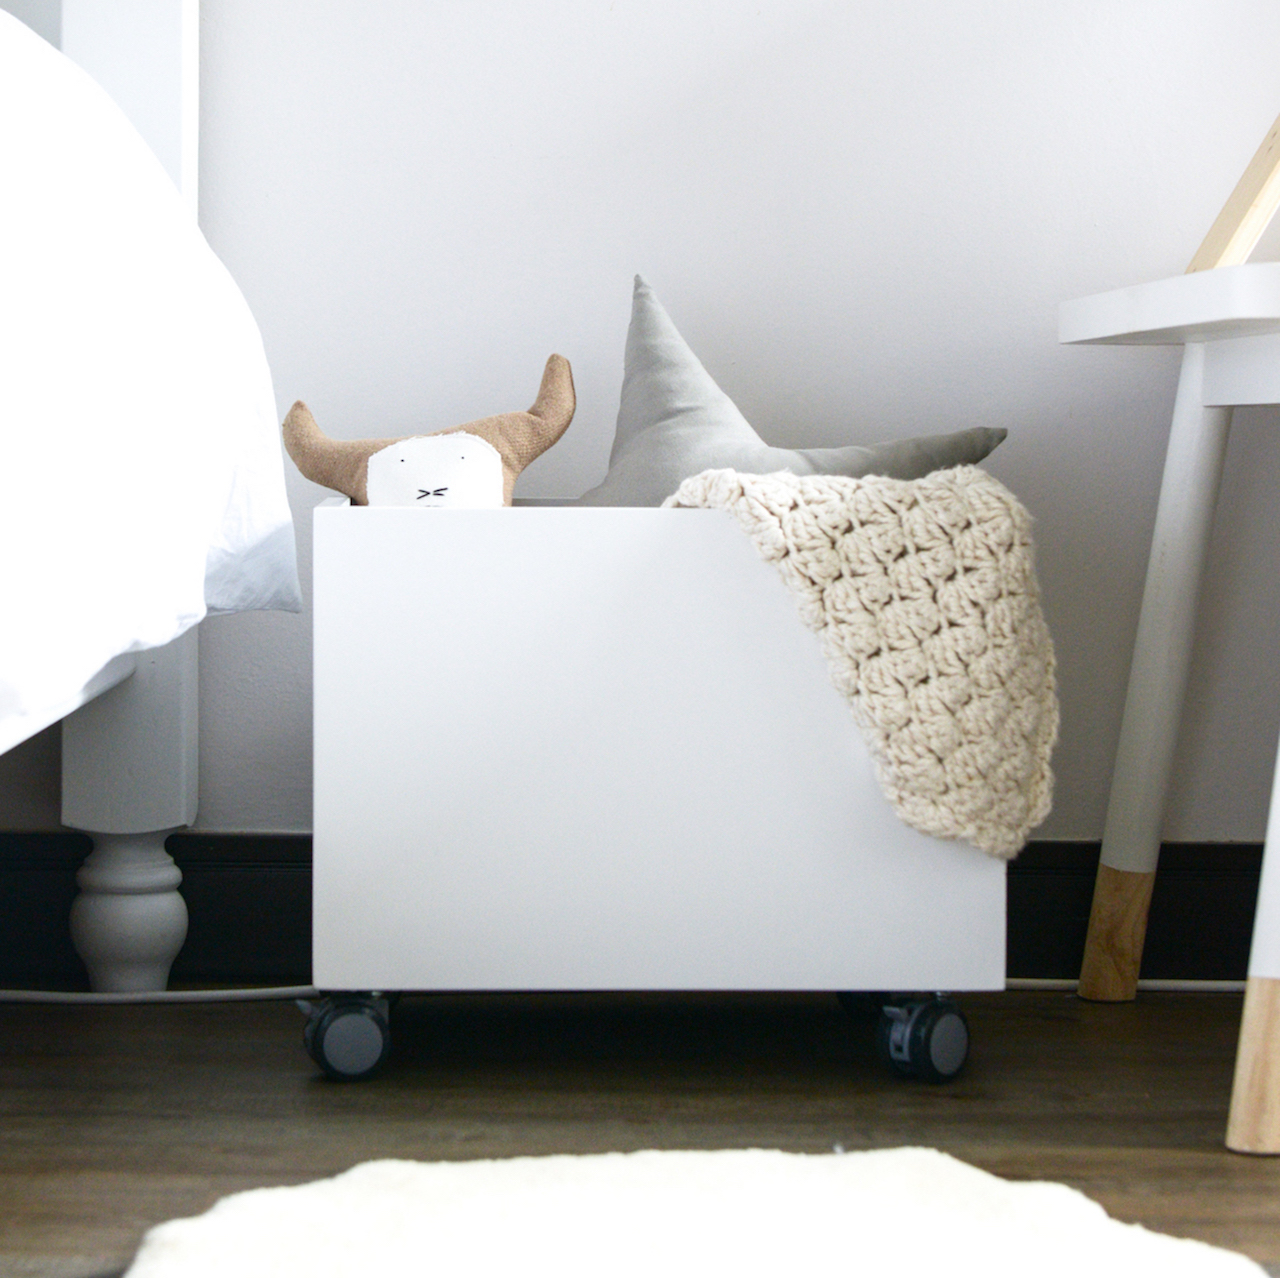 A simple effective way to organise a room or use it for storage for your childs toys.Our storageboxes are versitile and easy to move around withtheir wheels.   DIMENSIONS  Length - 430mm  Width - 320mm  Height - 345mm   FINISHES  Natural Wood - Birch Plywood  White Sprayed MDF  Custom - please email us should you like a custom quote   This product ships fully assembled.